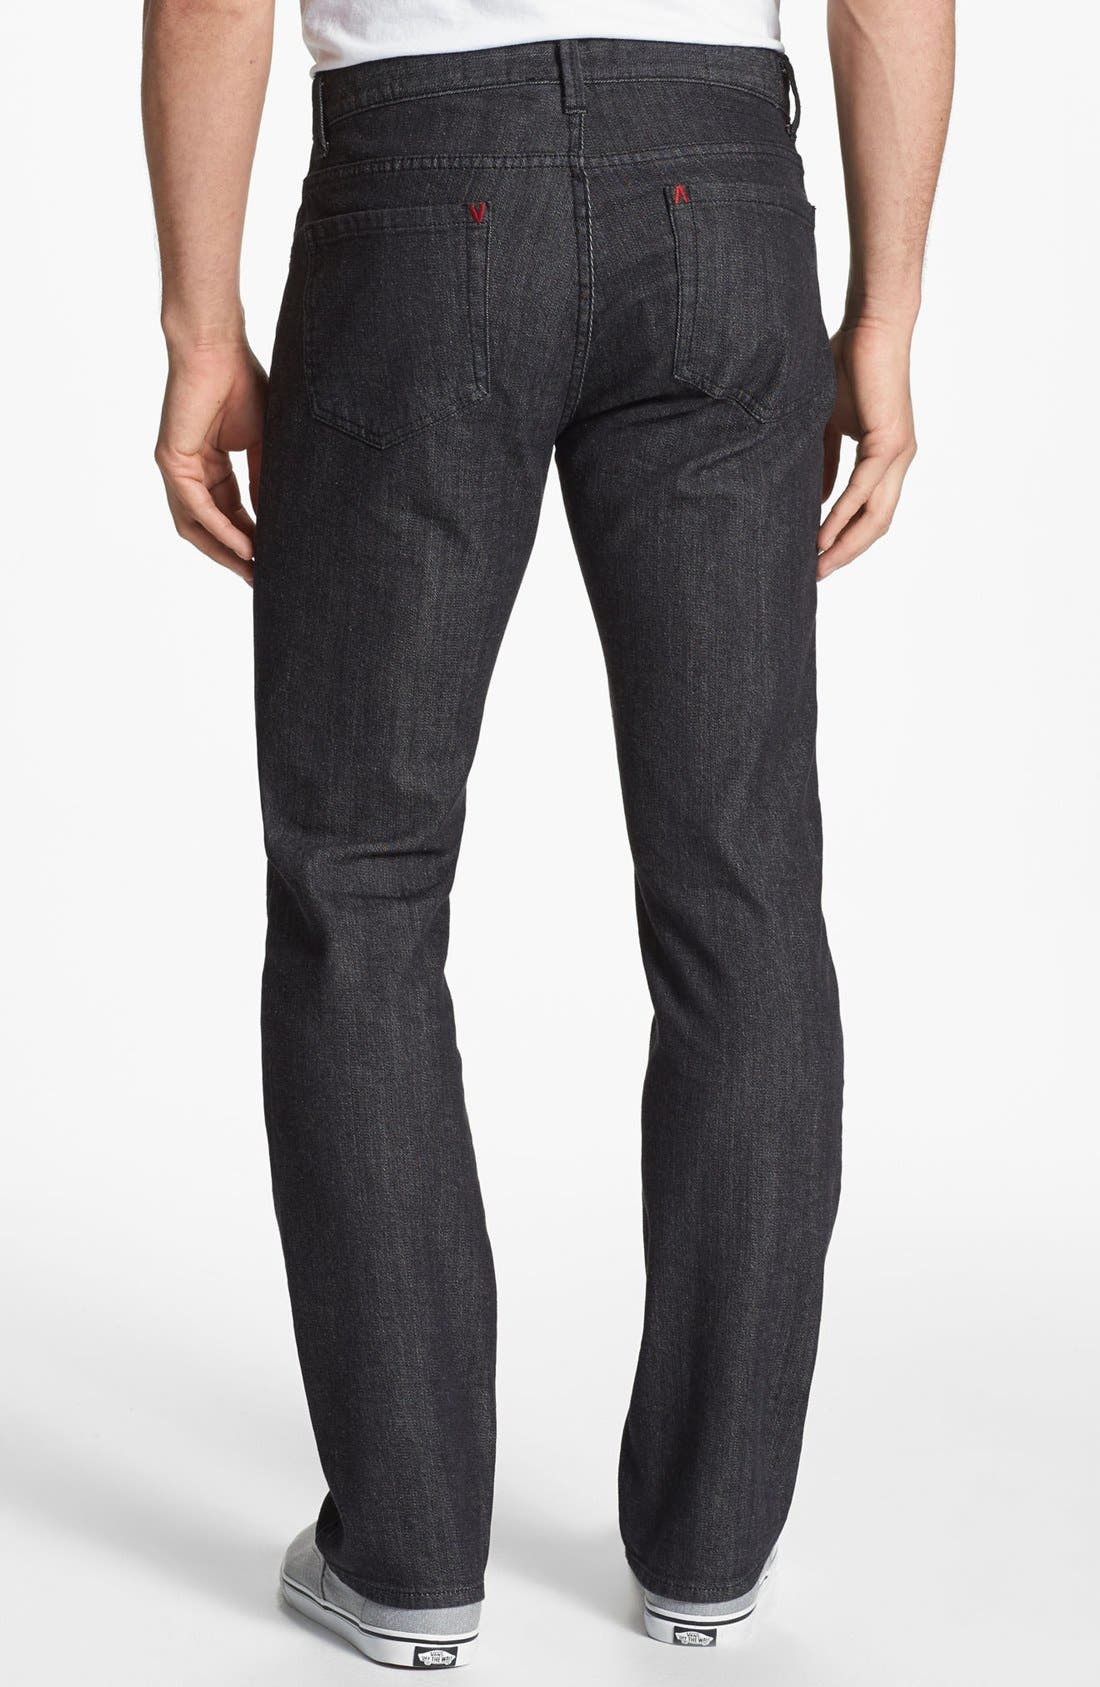 Alternate Image 1 Selected - RVCA Slim Straight Leg Jeans (Black)